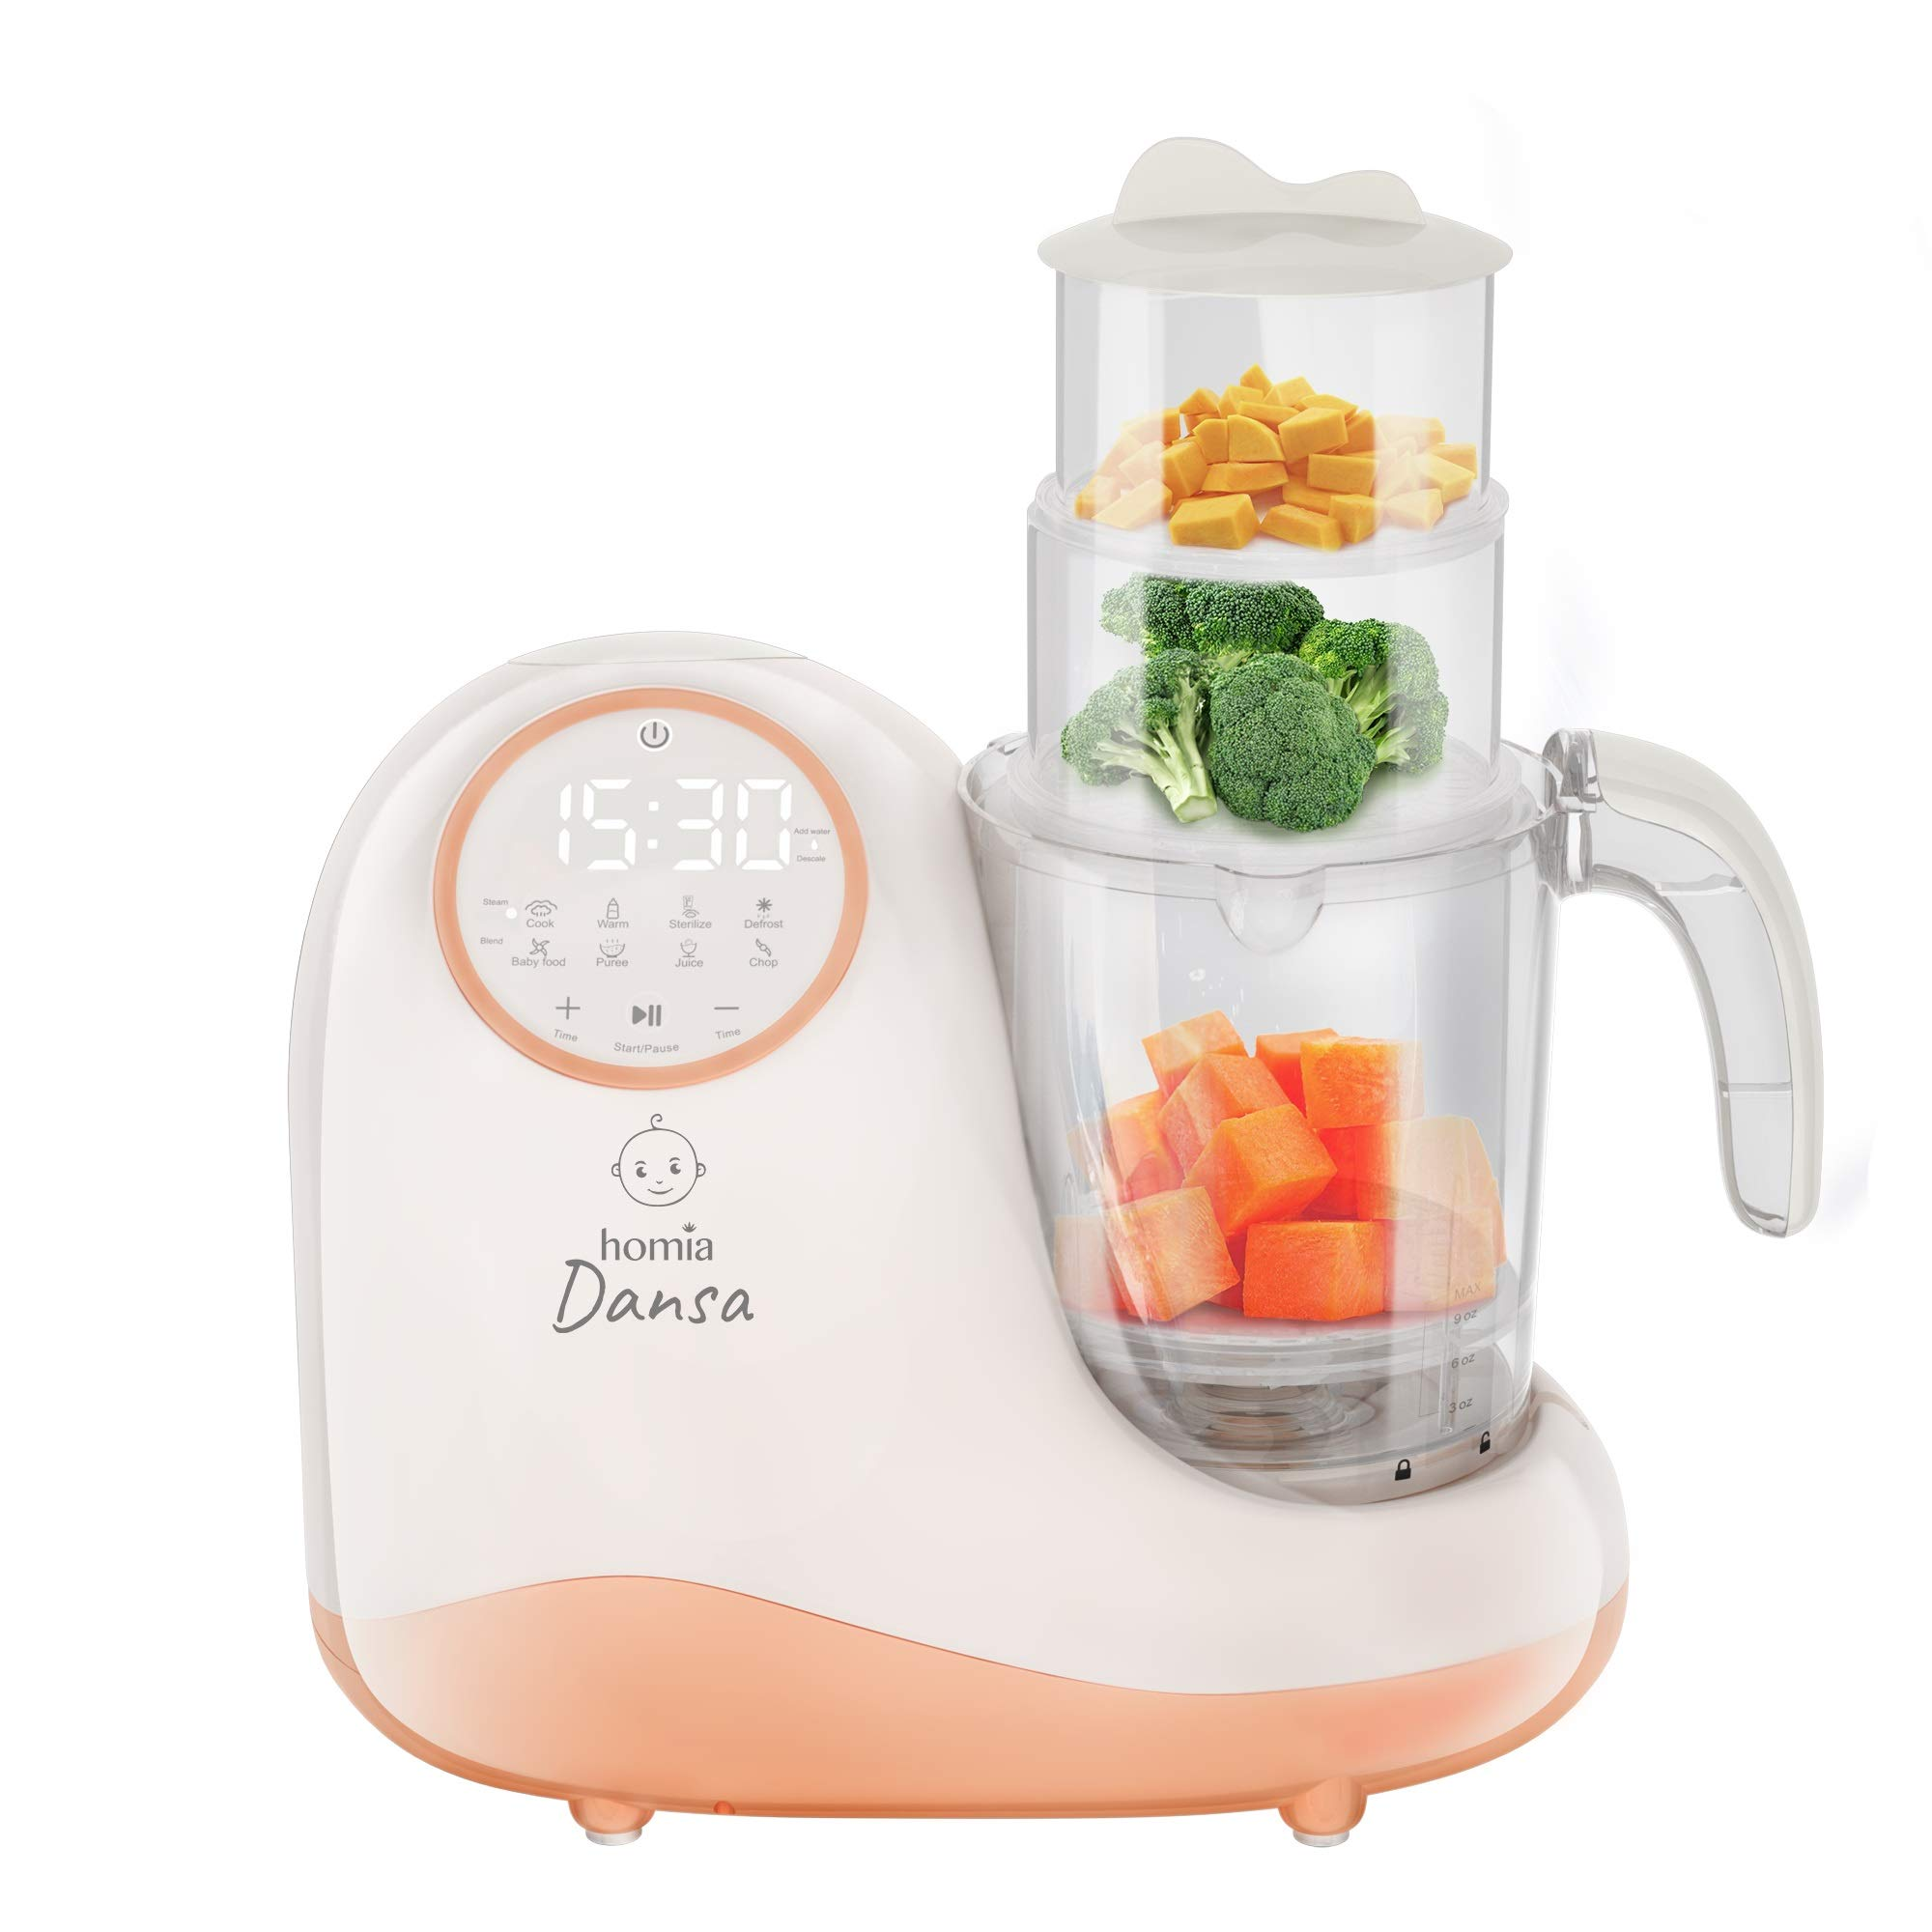 Baby Food Maker Chopper Grinder - Mills and Steamer 8 in 1 Processor for Toddlers - Steam, Blend, Chop, Disinfect, Clean, 20 Oz Tritan Stirring Cup, Touch Control Panel, Auto Shut-Off, 110V Only by homia (Image #2)